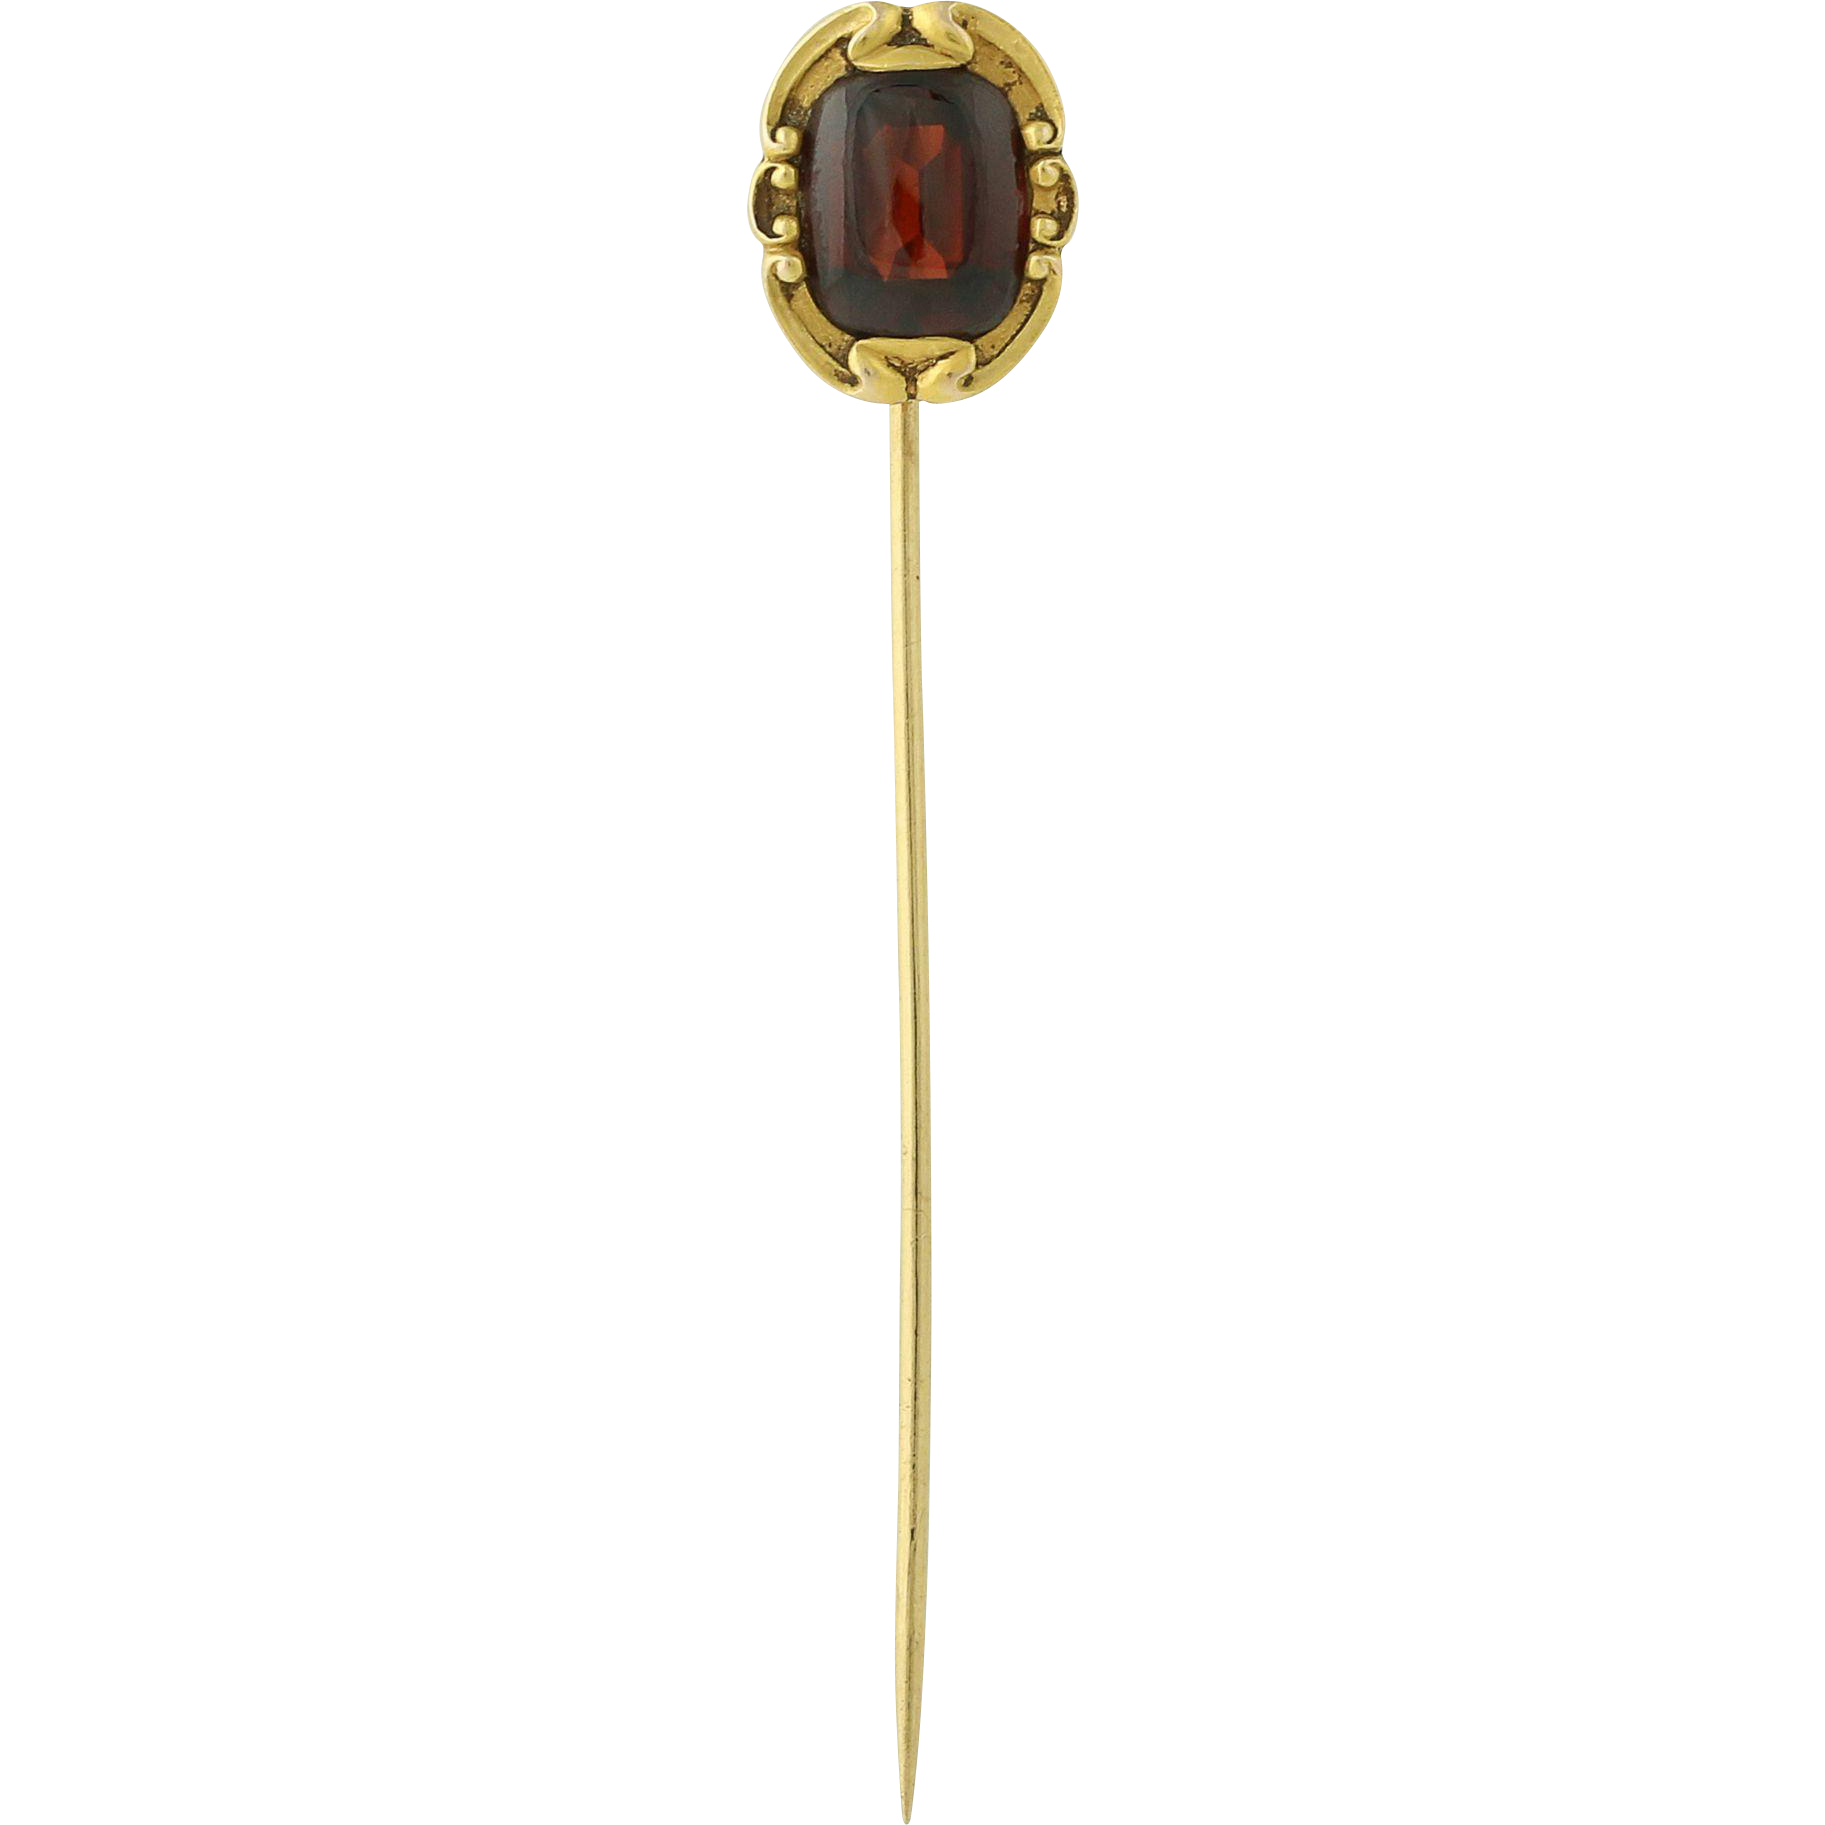 Edwardian Era Garnet Stickpin - 14k Yellow Gold Vintage January Birthstone